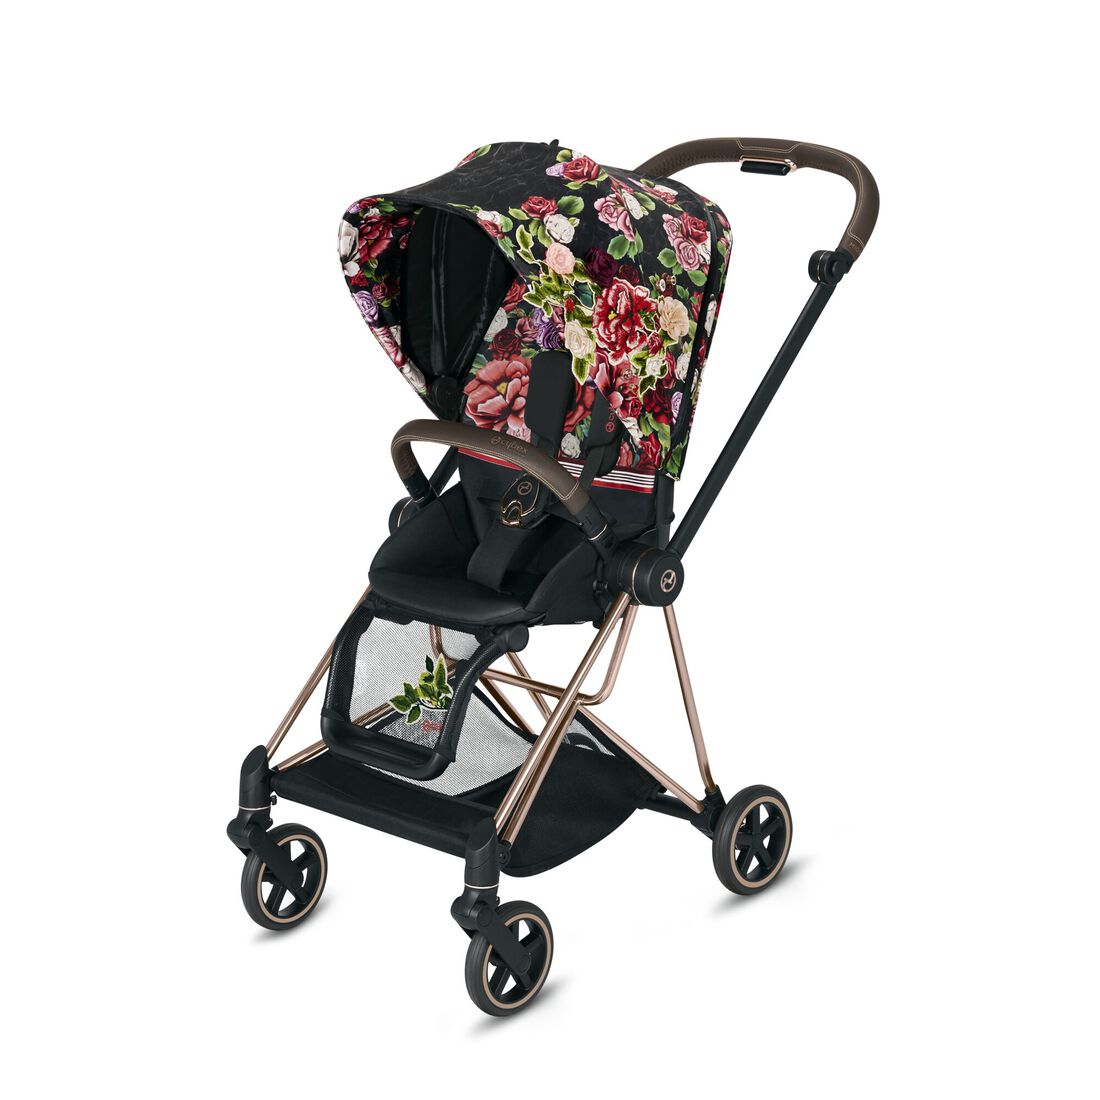 CYBEX Mios Seat Pack - Spring Blossom Dark in Spring Blossom Dark large image number 2